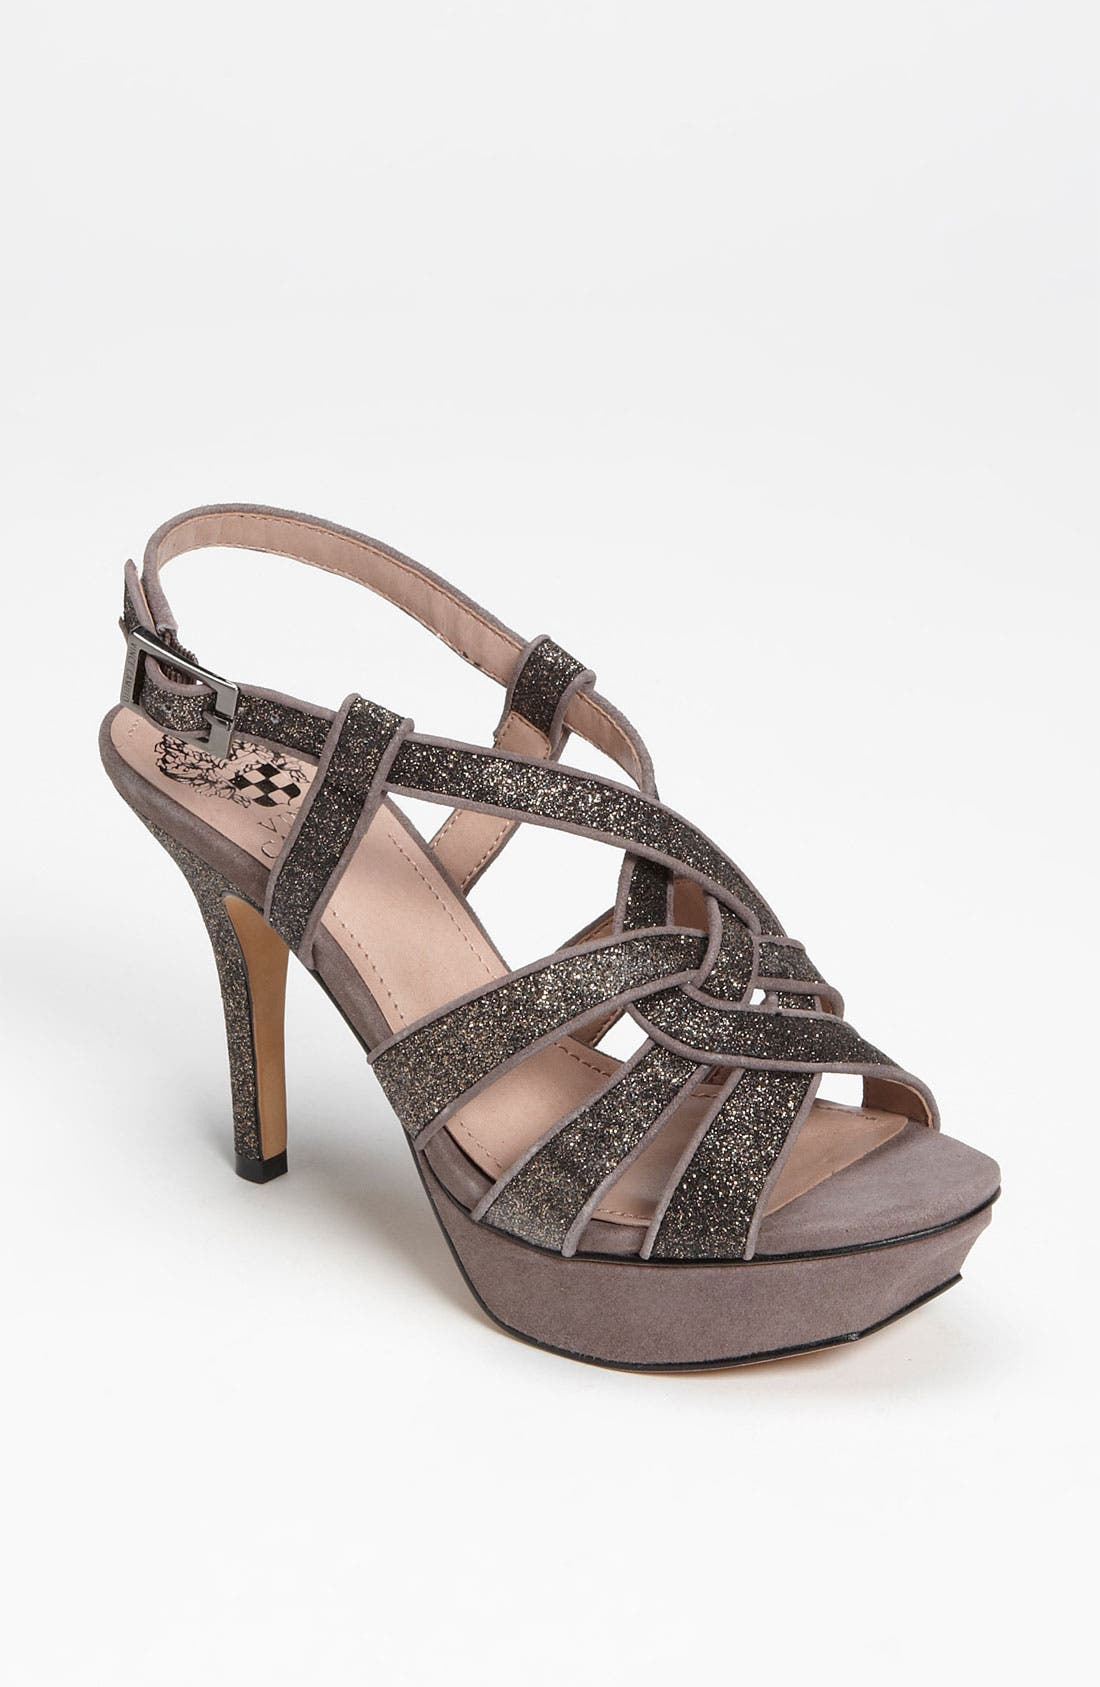 Alternate Image 1 Selected - Vince Camuto 'Tranton' Sandal